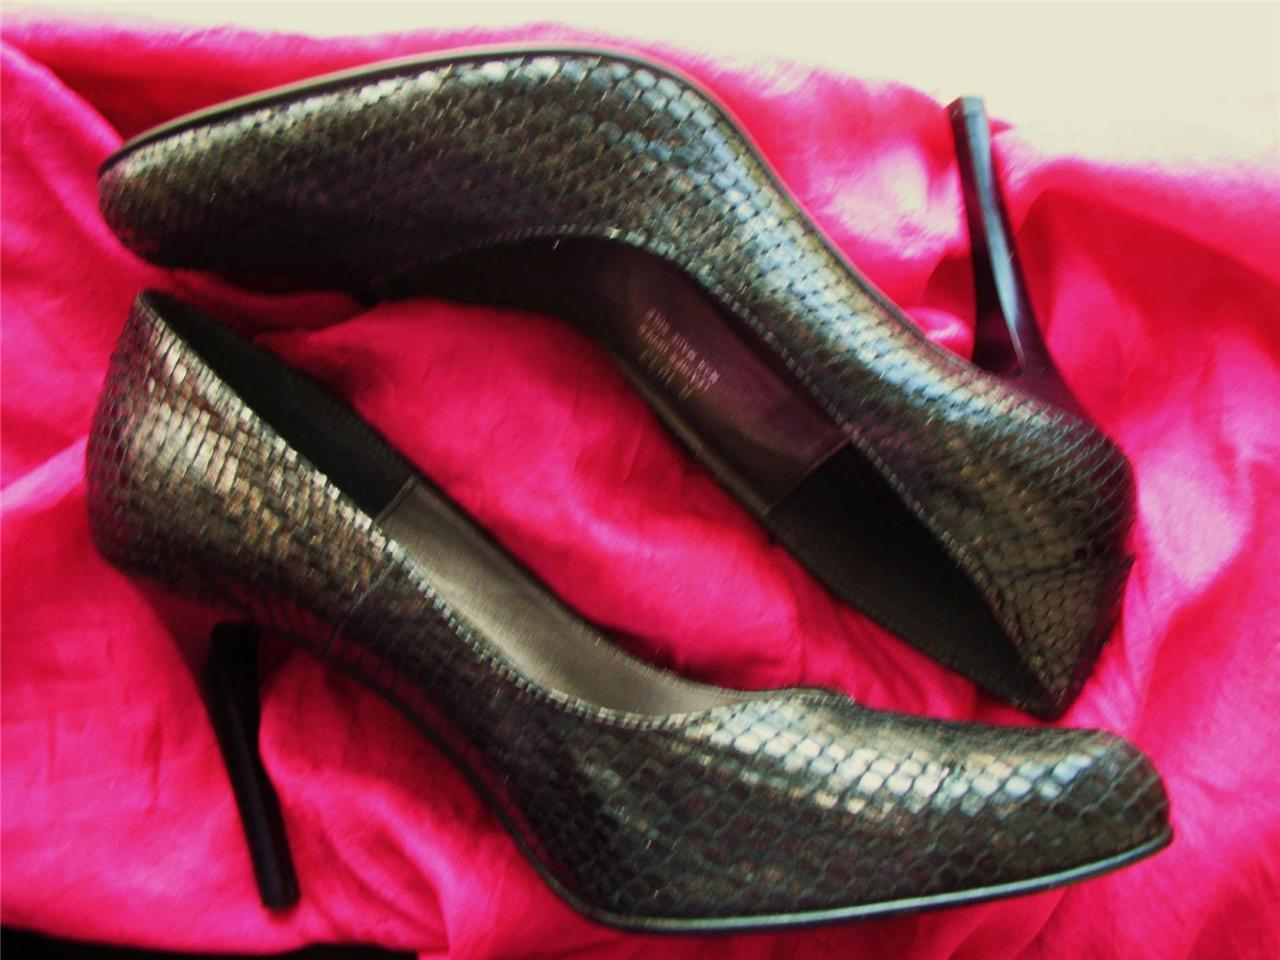 CARISMA  Schuhe  BLACK LEATHER SNAKE STILETTOS PUMPS   S 7.5M/38  MADE IN ITALY